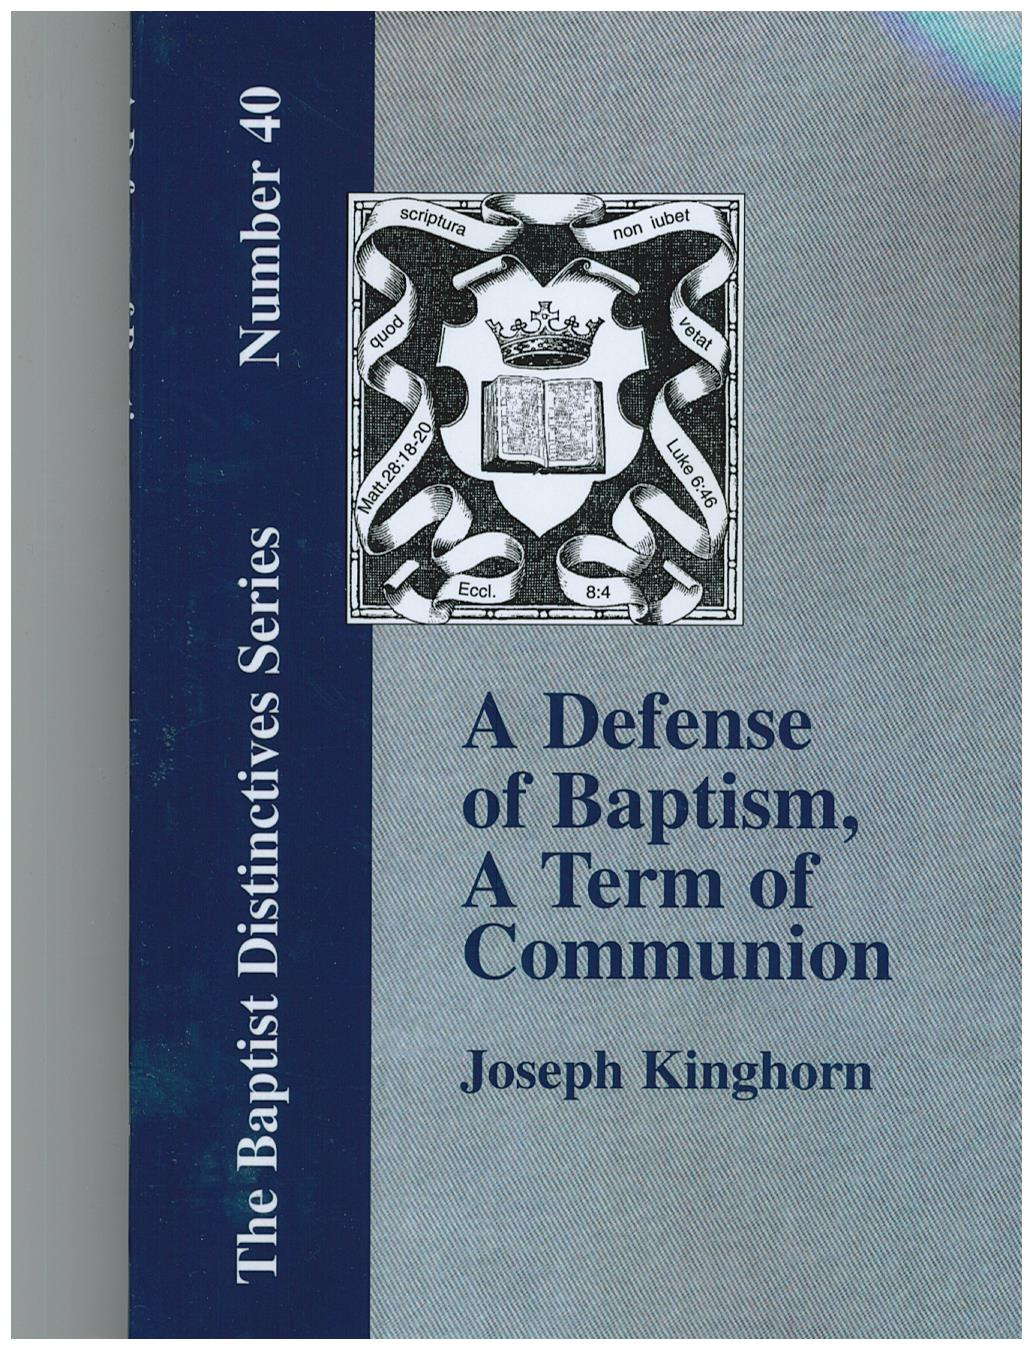 an analysis of baptism The sacraments of baptism and confirmation father john a hardon, sj from the dawn of christian history, baptism and confirmation have been very closely associated to this day, catholics belonging to the eastern rite receive both sacraments in infancy pope st leo i.